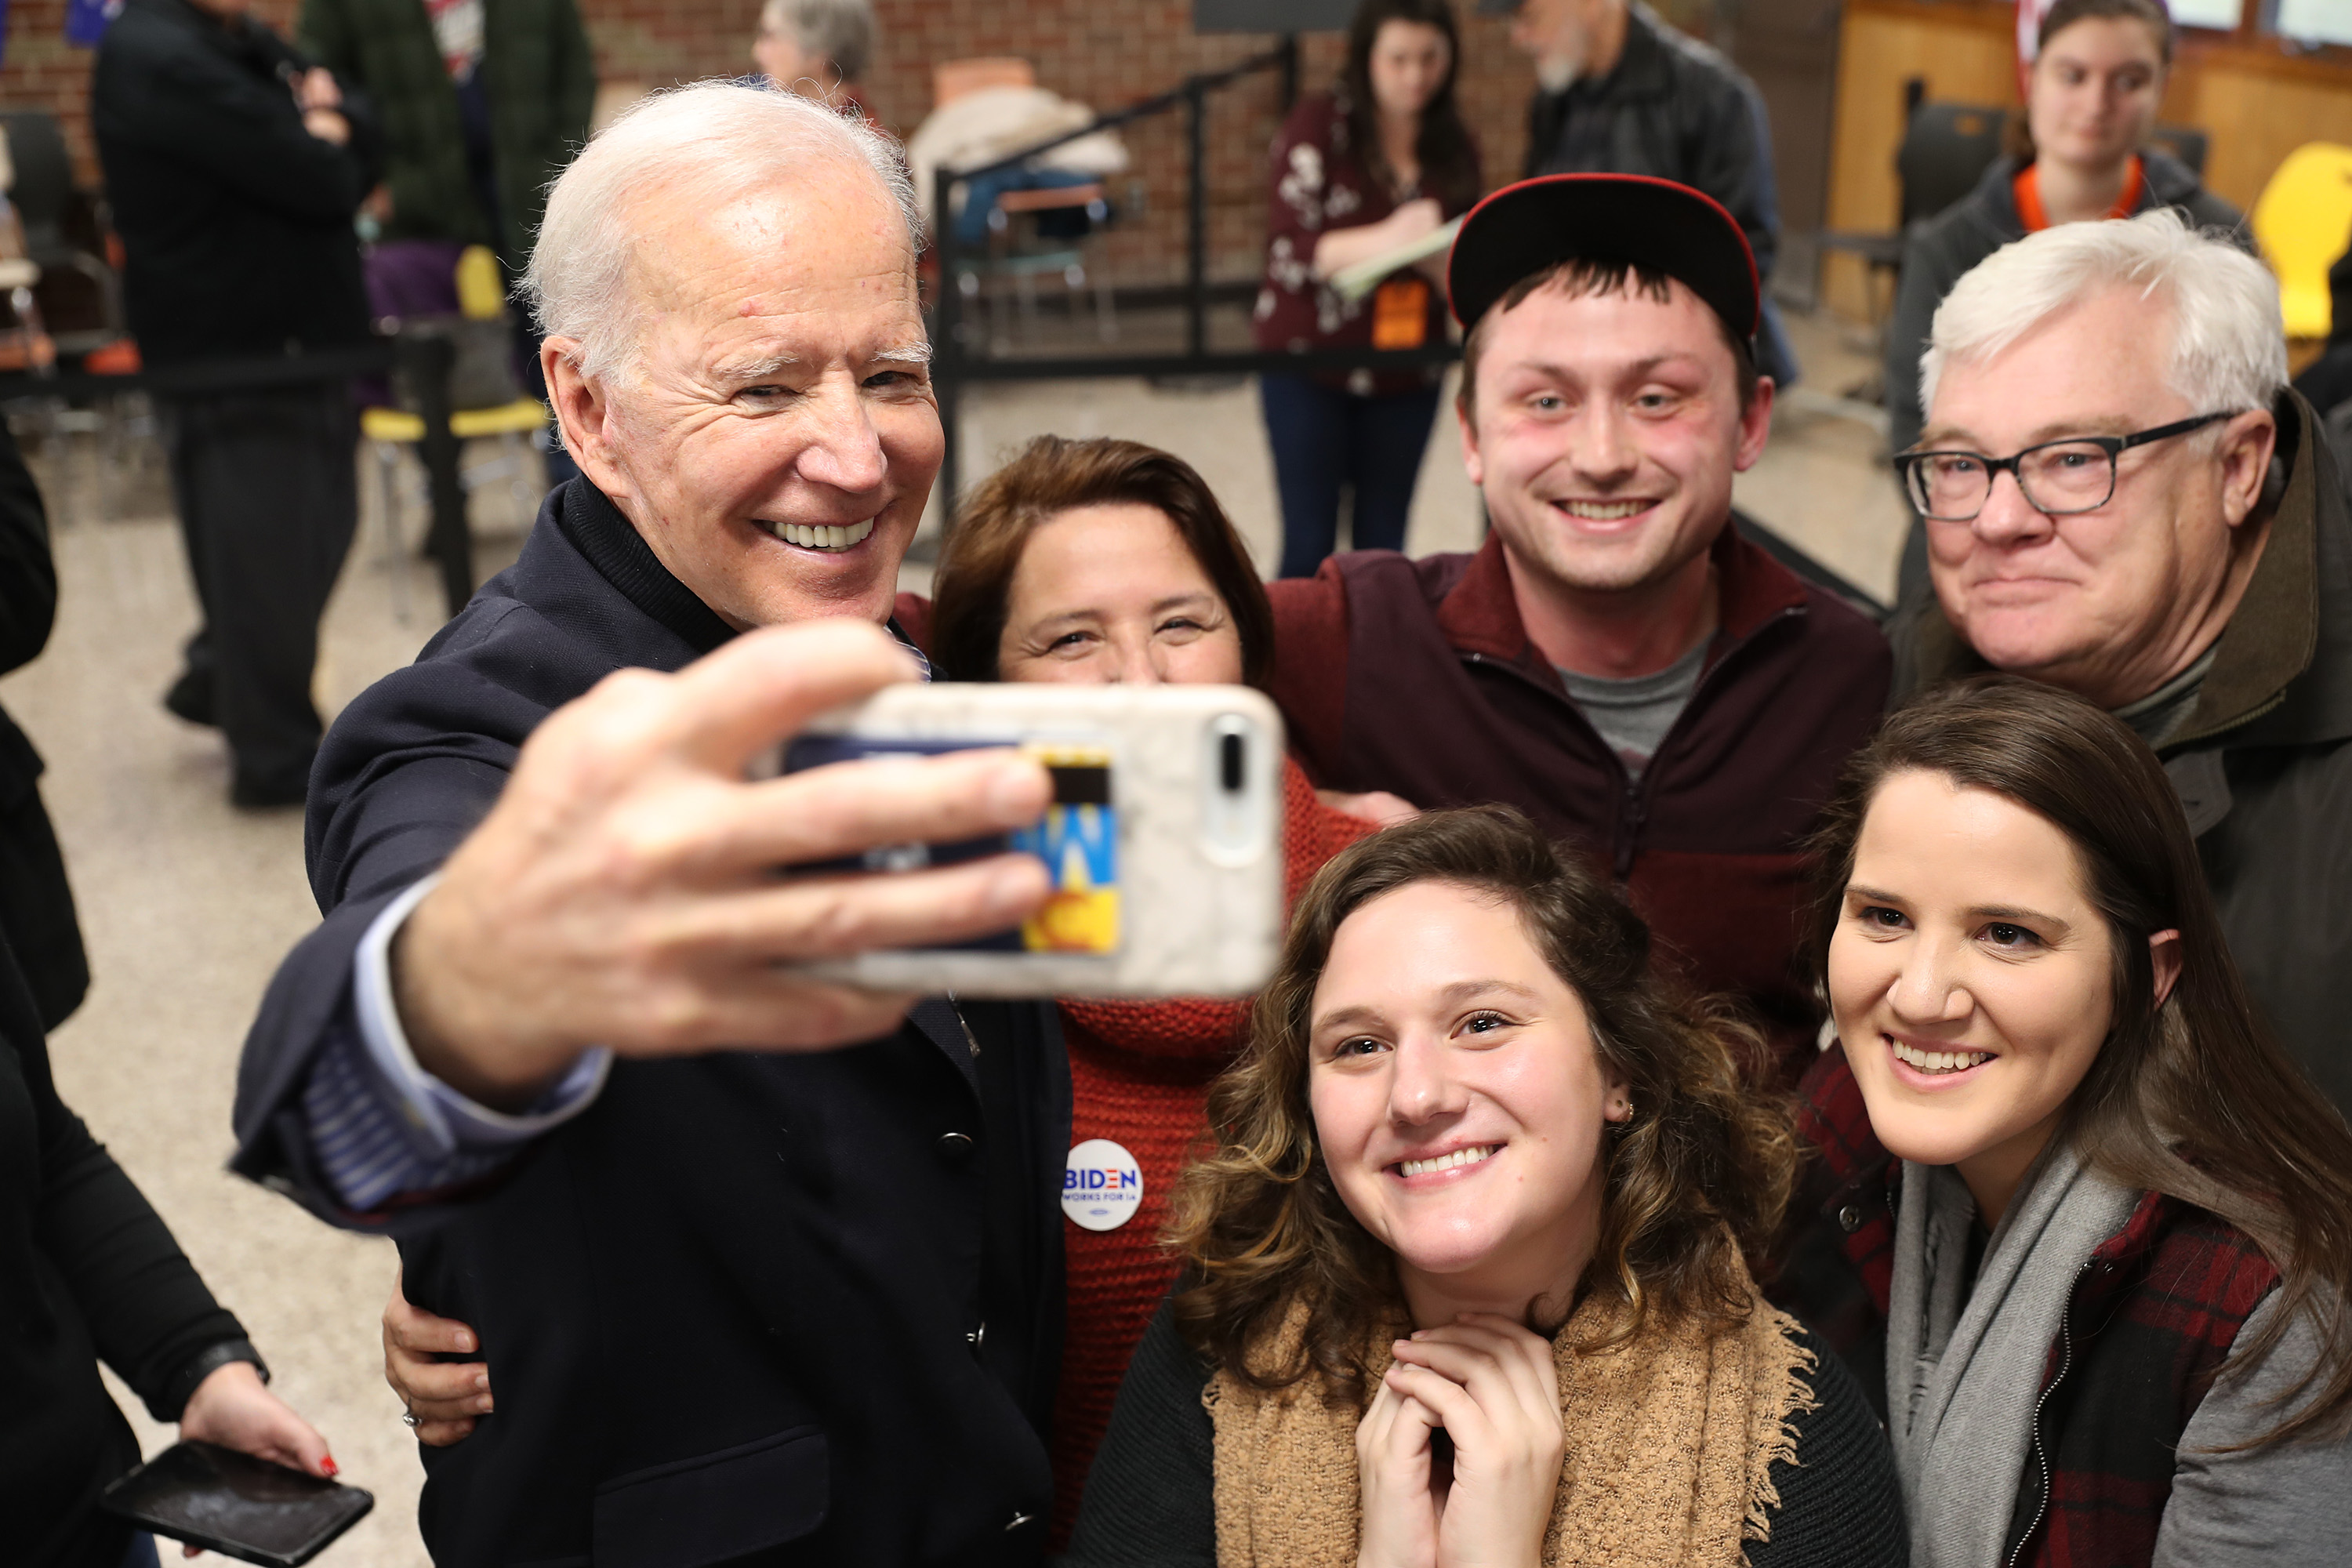 Democratic presidential candidate, former Vice President Joe Biden greets people during a campaign stop at Tipton High School on December 28, 2019 in Tipton, Iowa. (Joe Raedle/Getty Images)